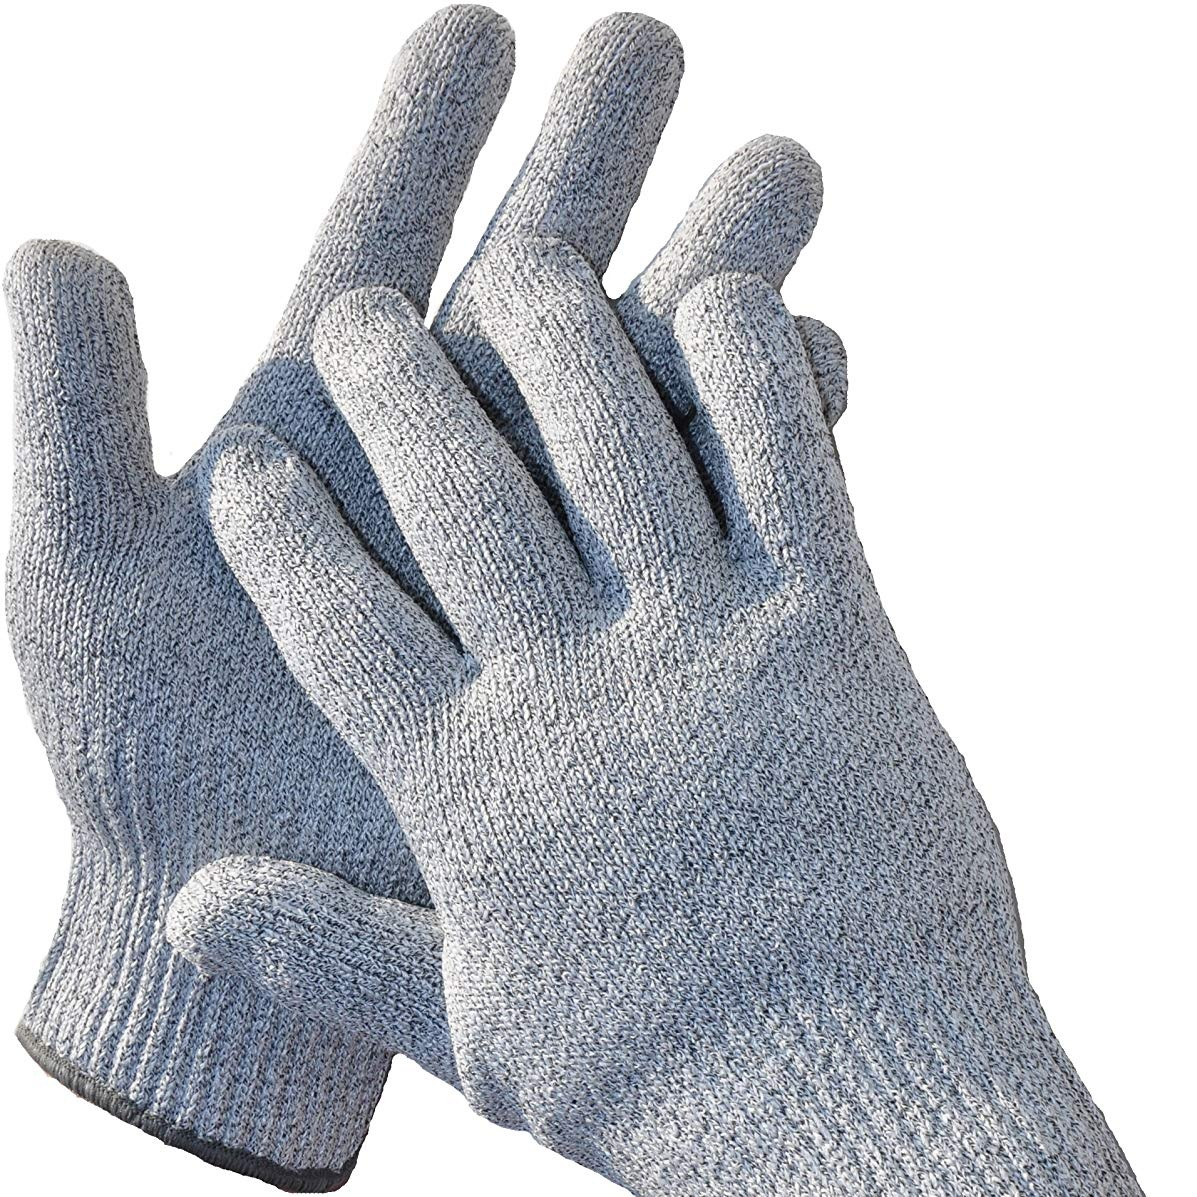 Cut Resistant Gloves for Kitchen -